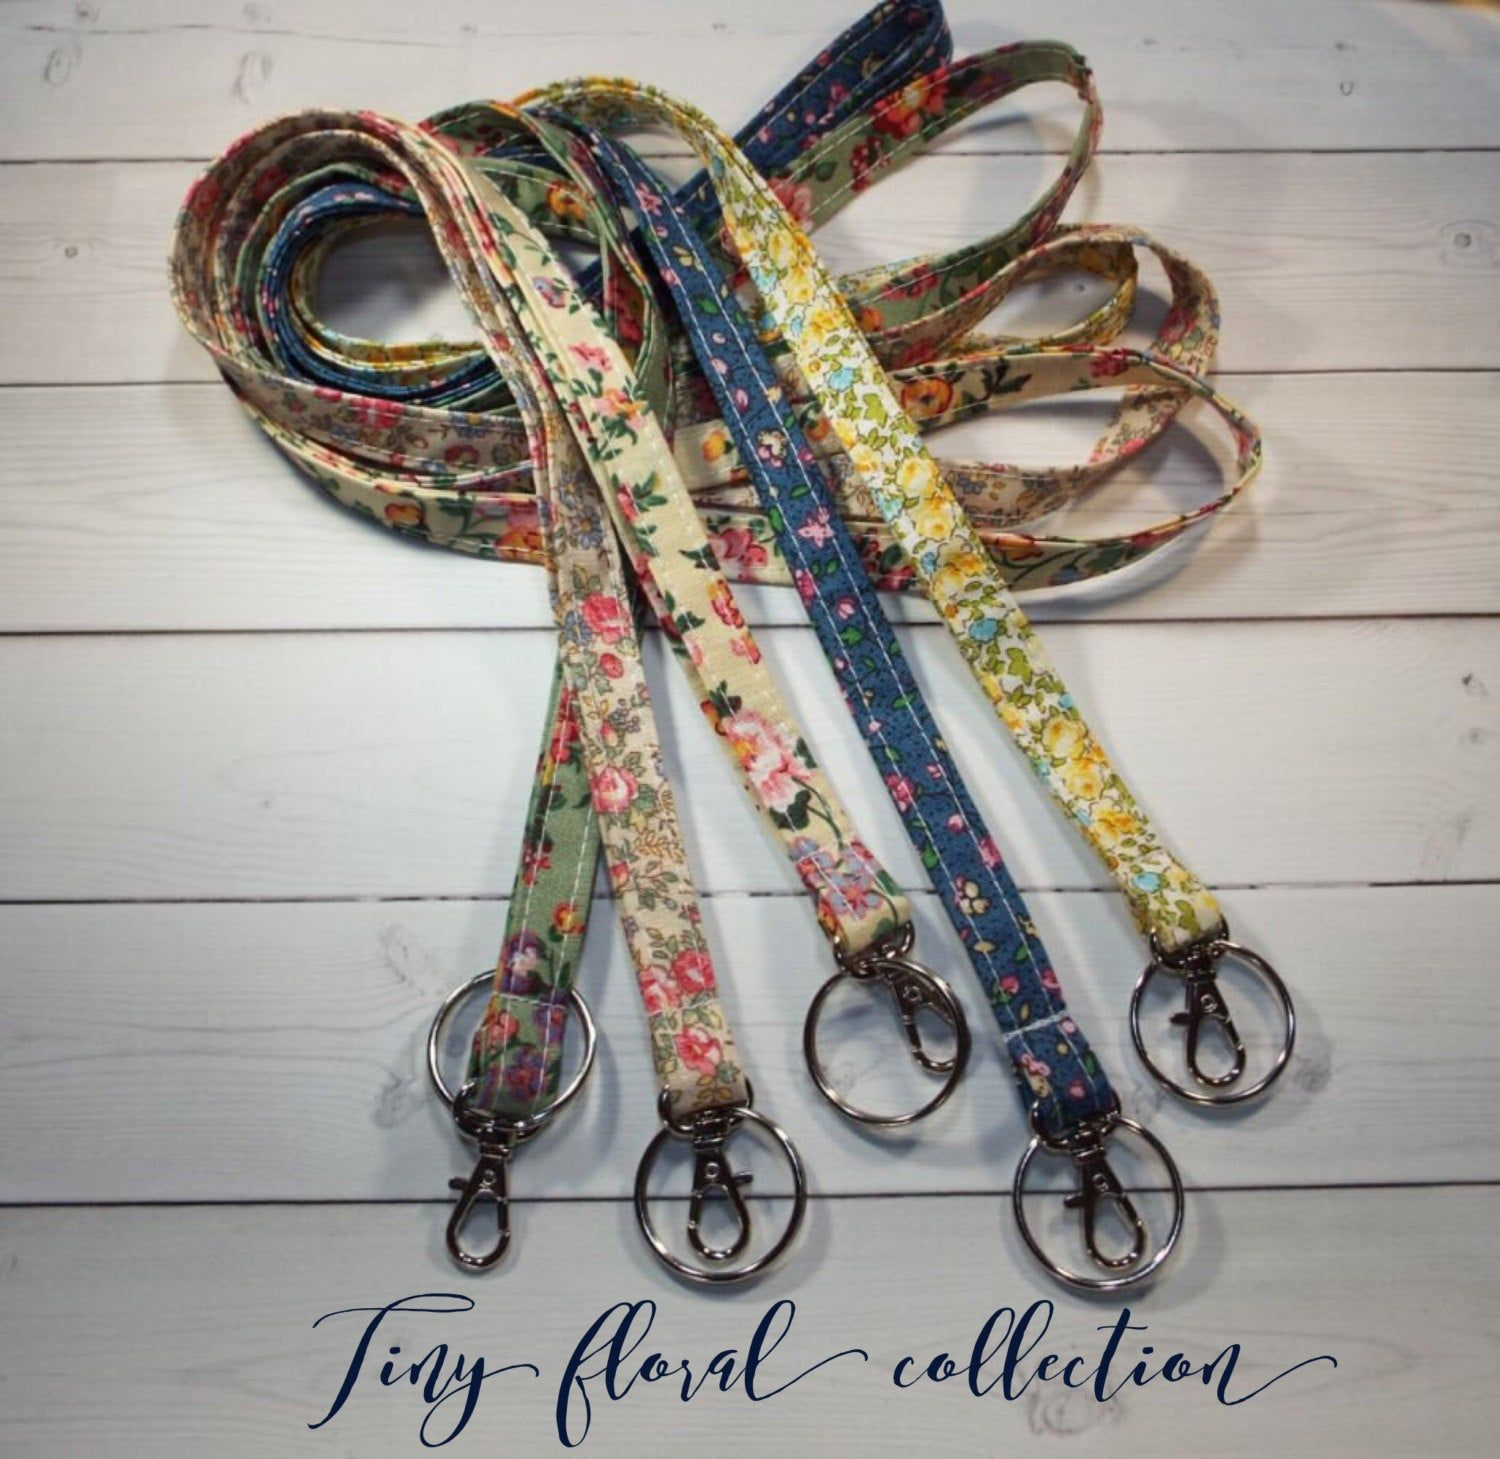 Skinny floral Lanyard ID Badge Holder - Christmas gifts for teachers, Christmas gifts for coworkers, gifts for her, stocking stuffer